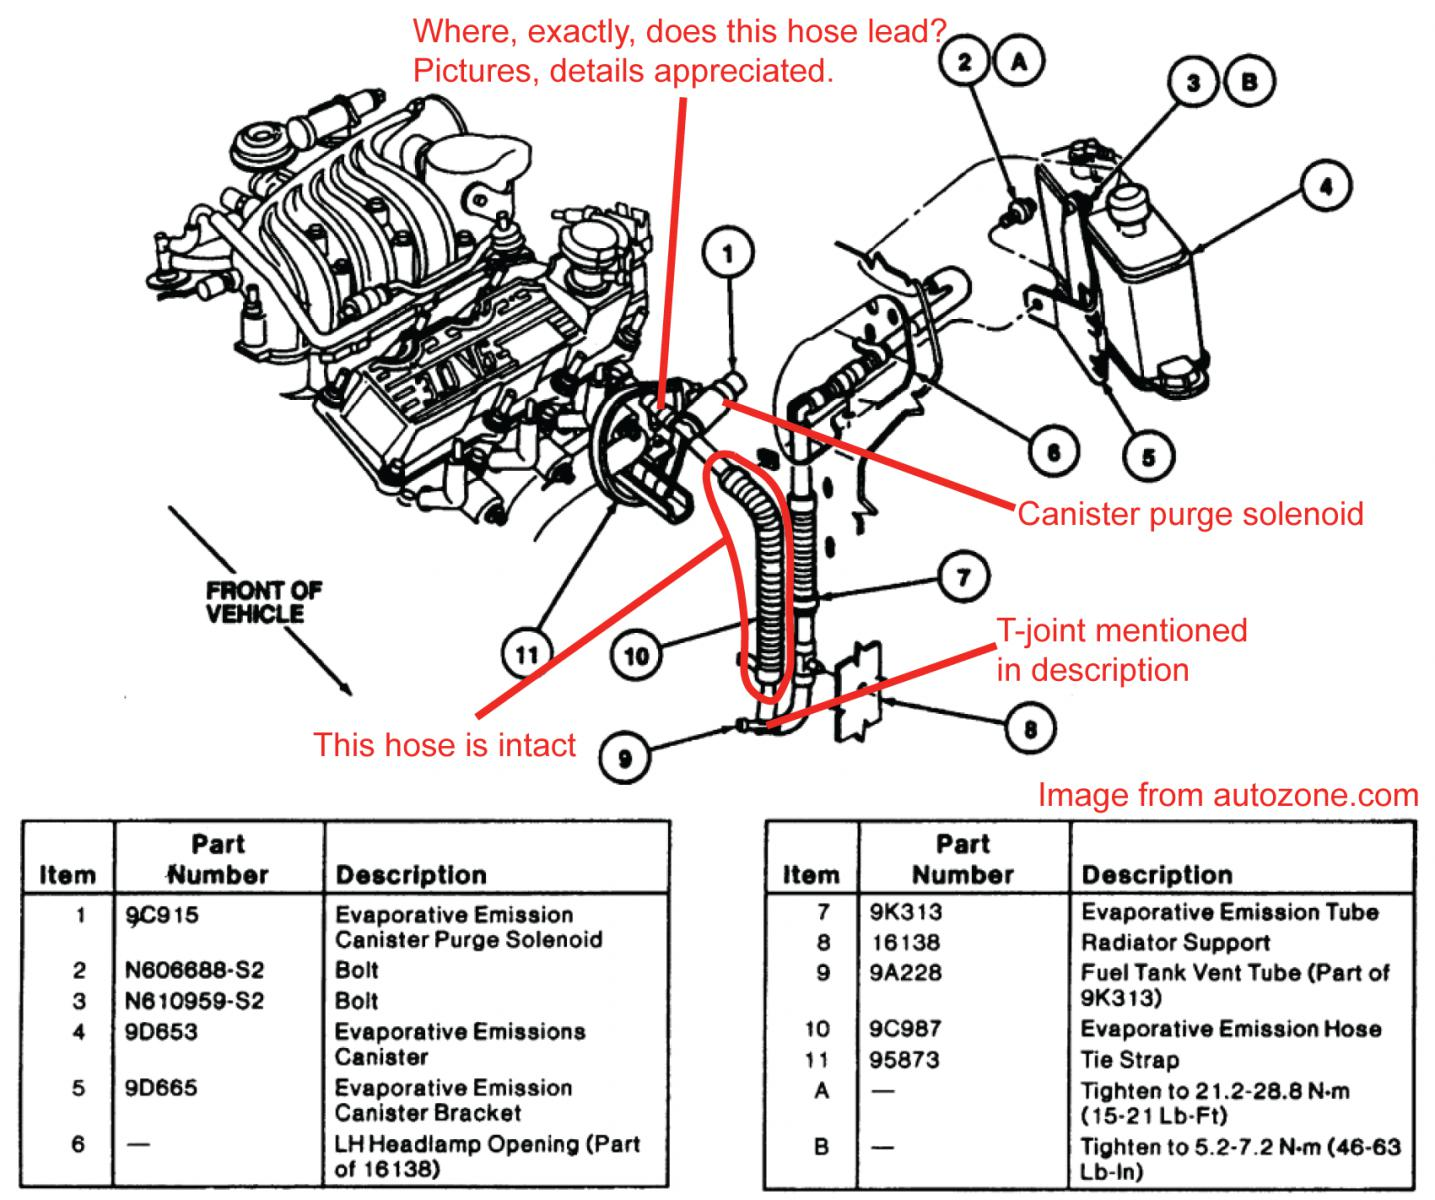 1993 ford ranger fuel system diagram switch diagram u2022 rh 140 82 24 126 2003  Ford Ranger 3.0 Fuel System Diagram Ford F-150 Fuel System Diagram